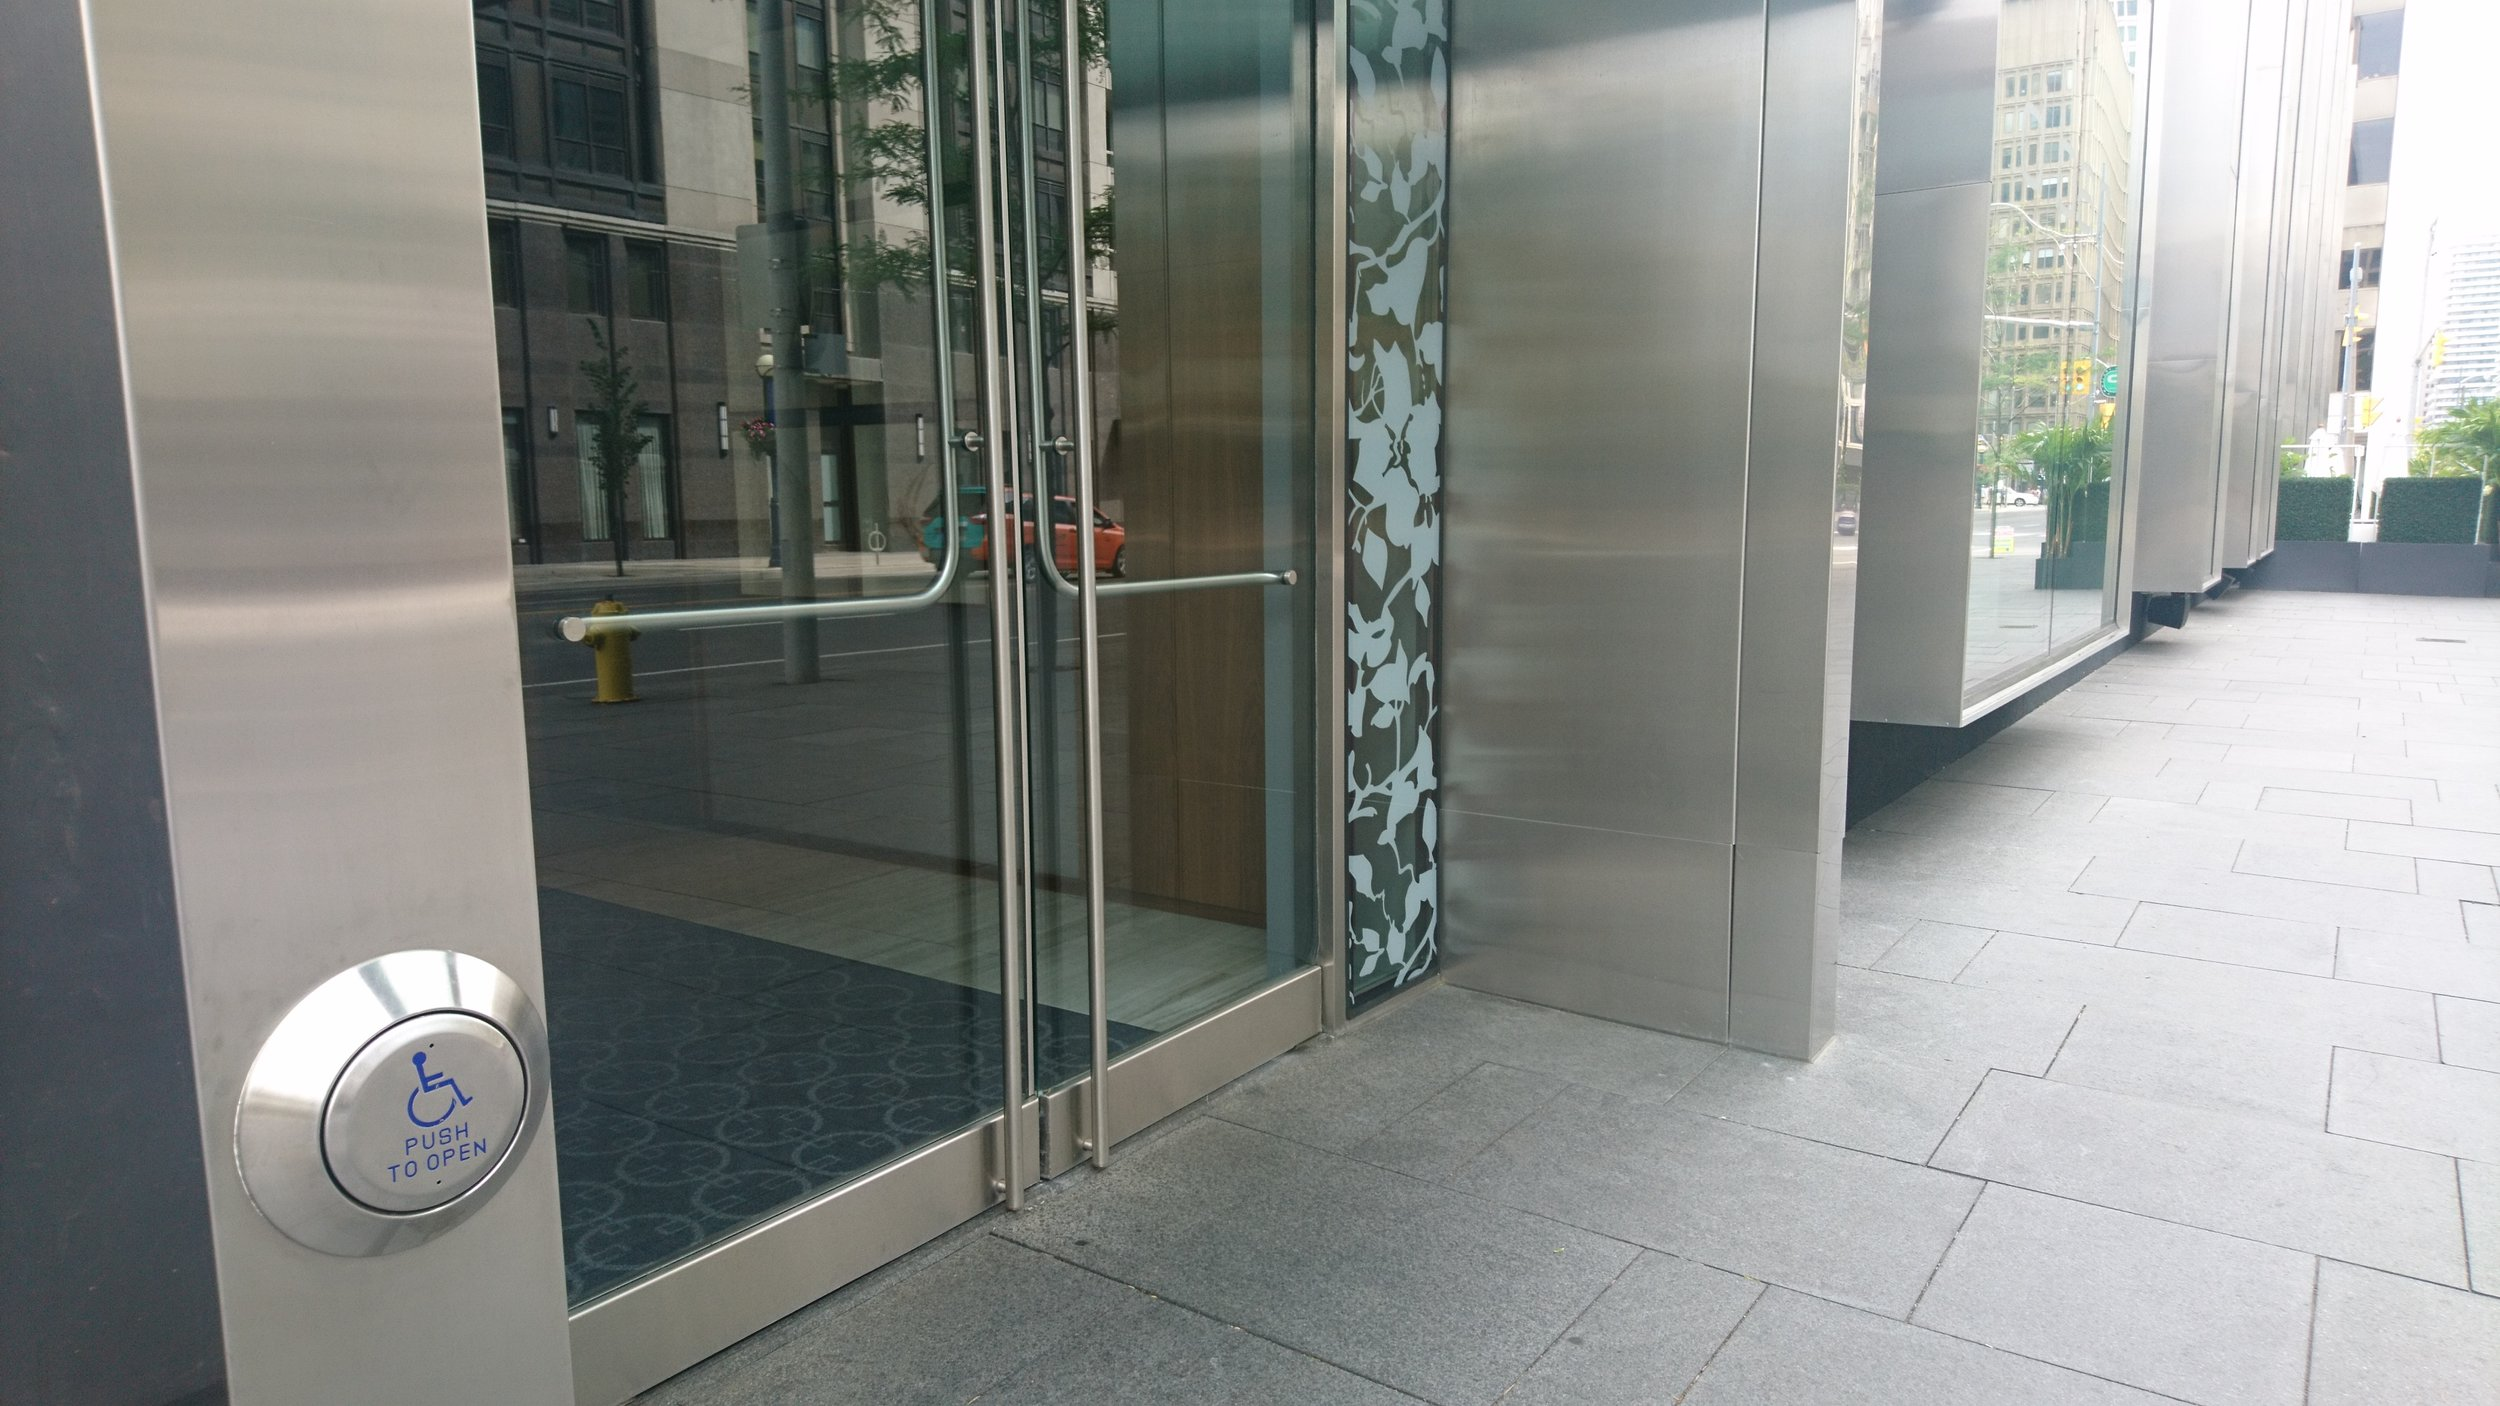 Picture of automatic door opener outside main entrance of D Bar